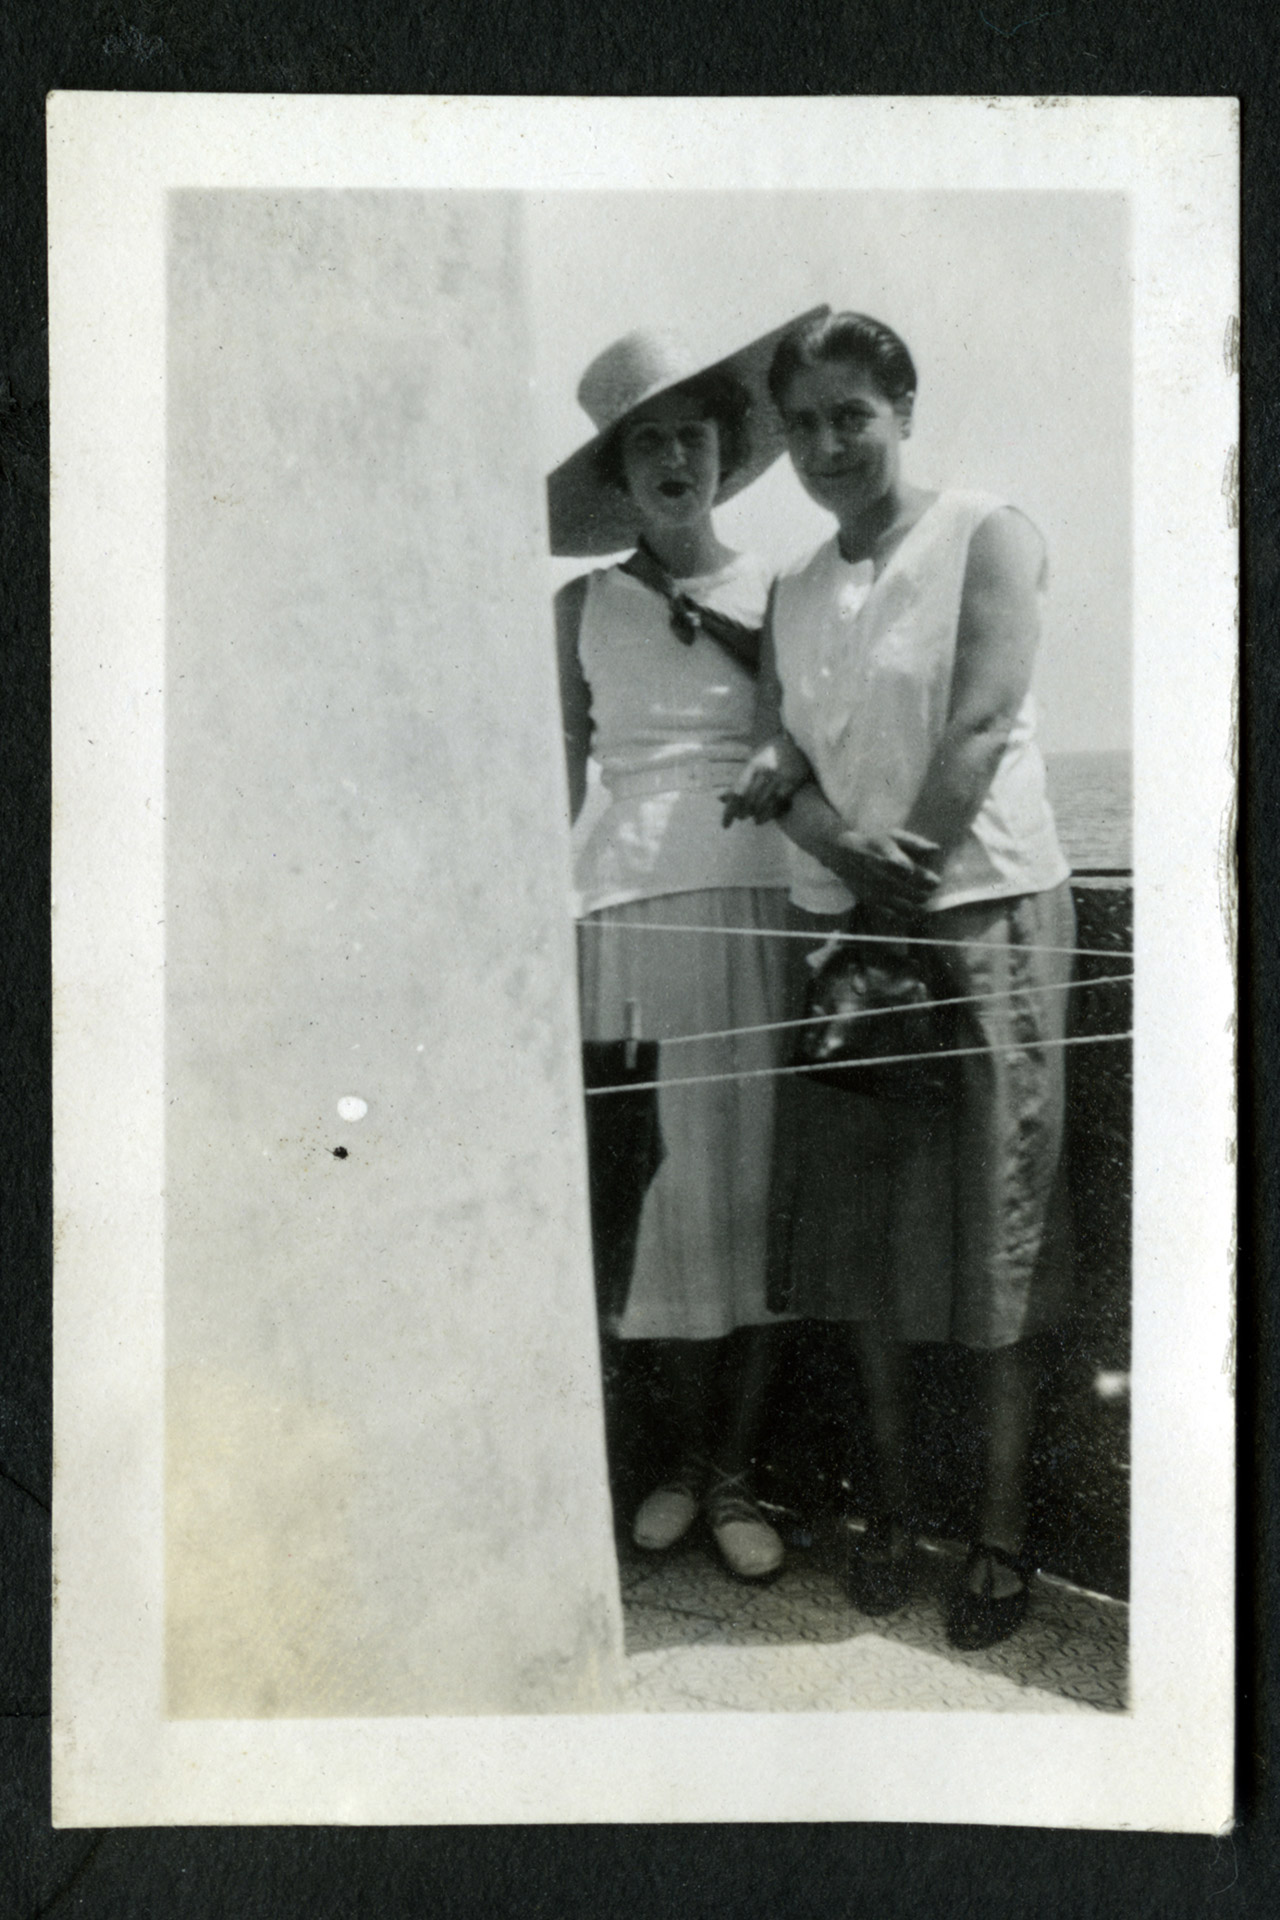 Dorothy Todd (à direita) e Madge Garland (à esquerda) © Madge Garland archive, Royal College of Art Special Collections